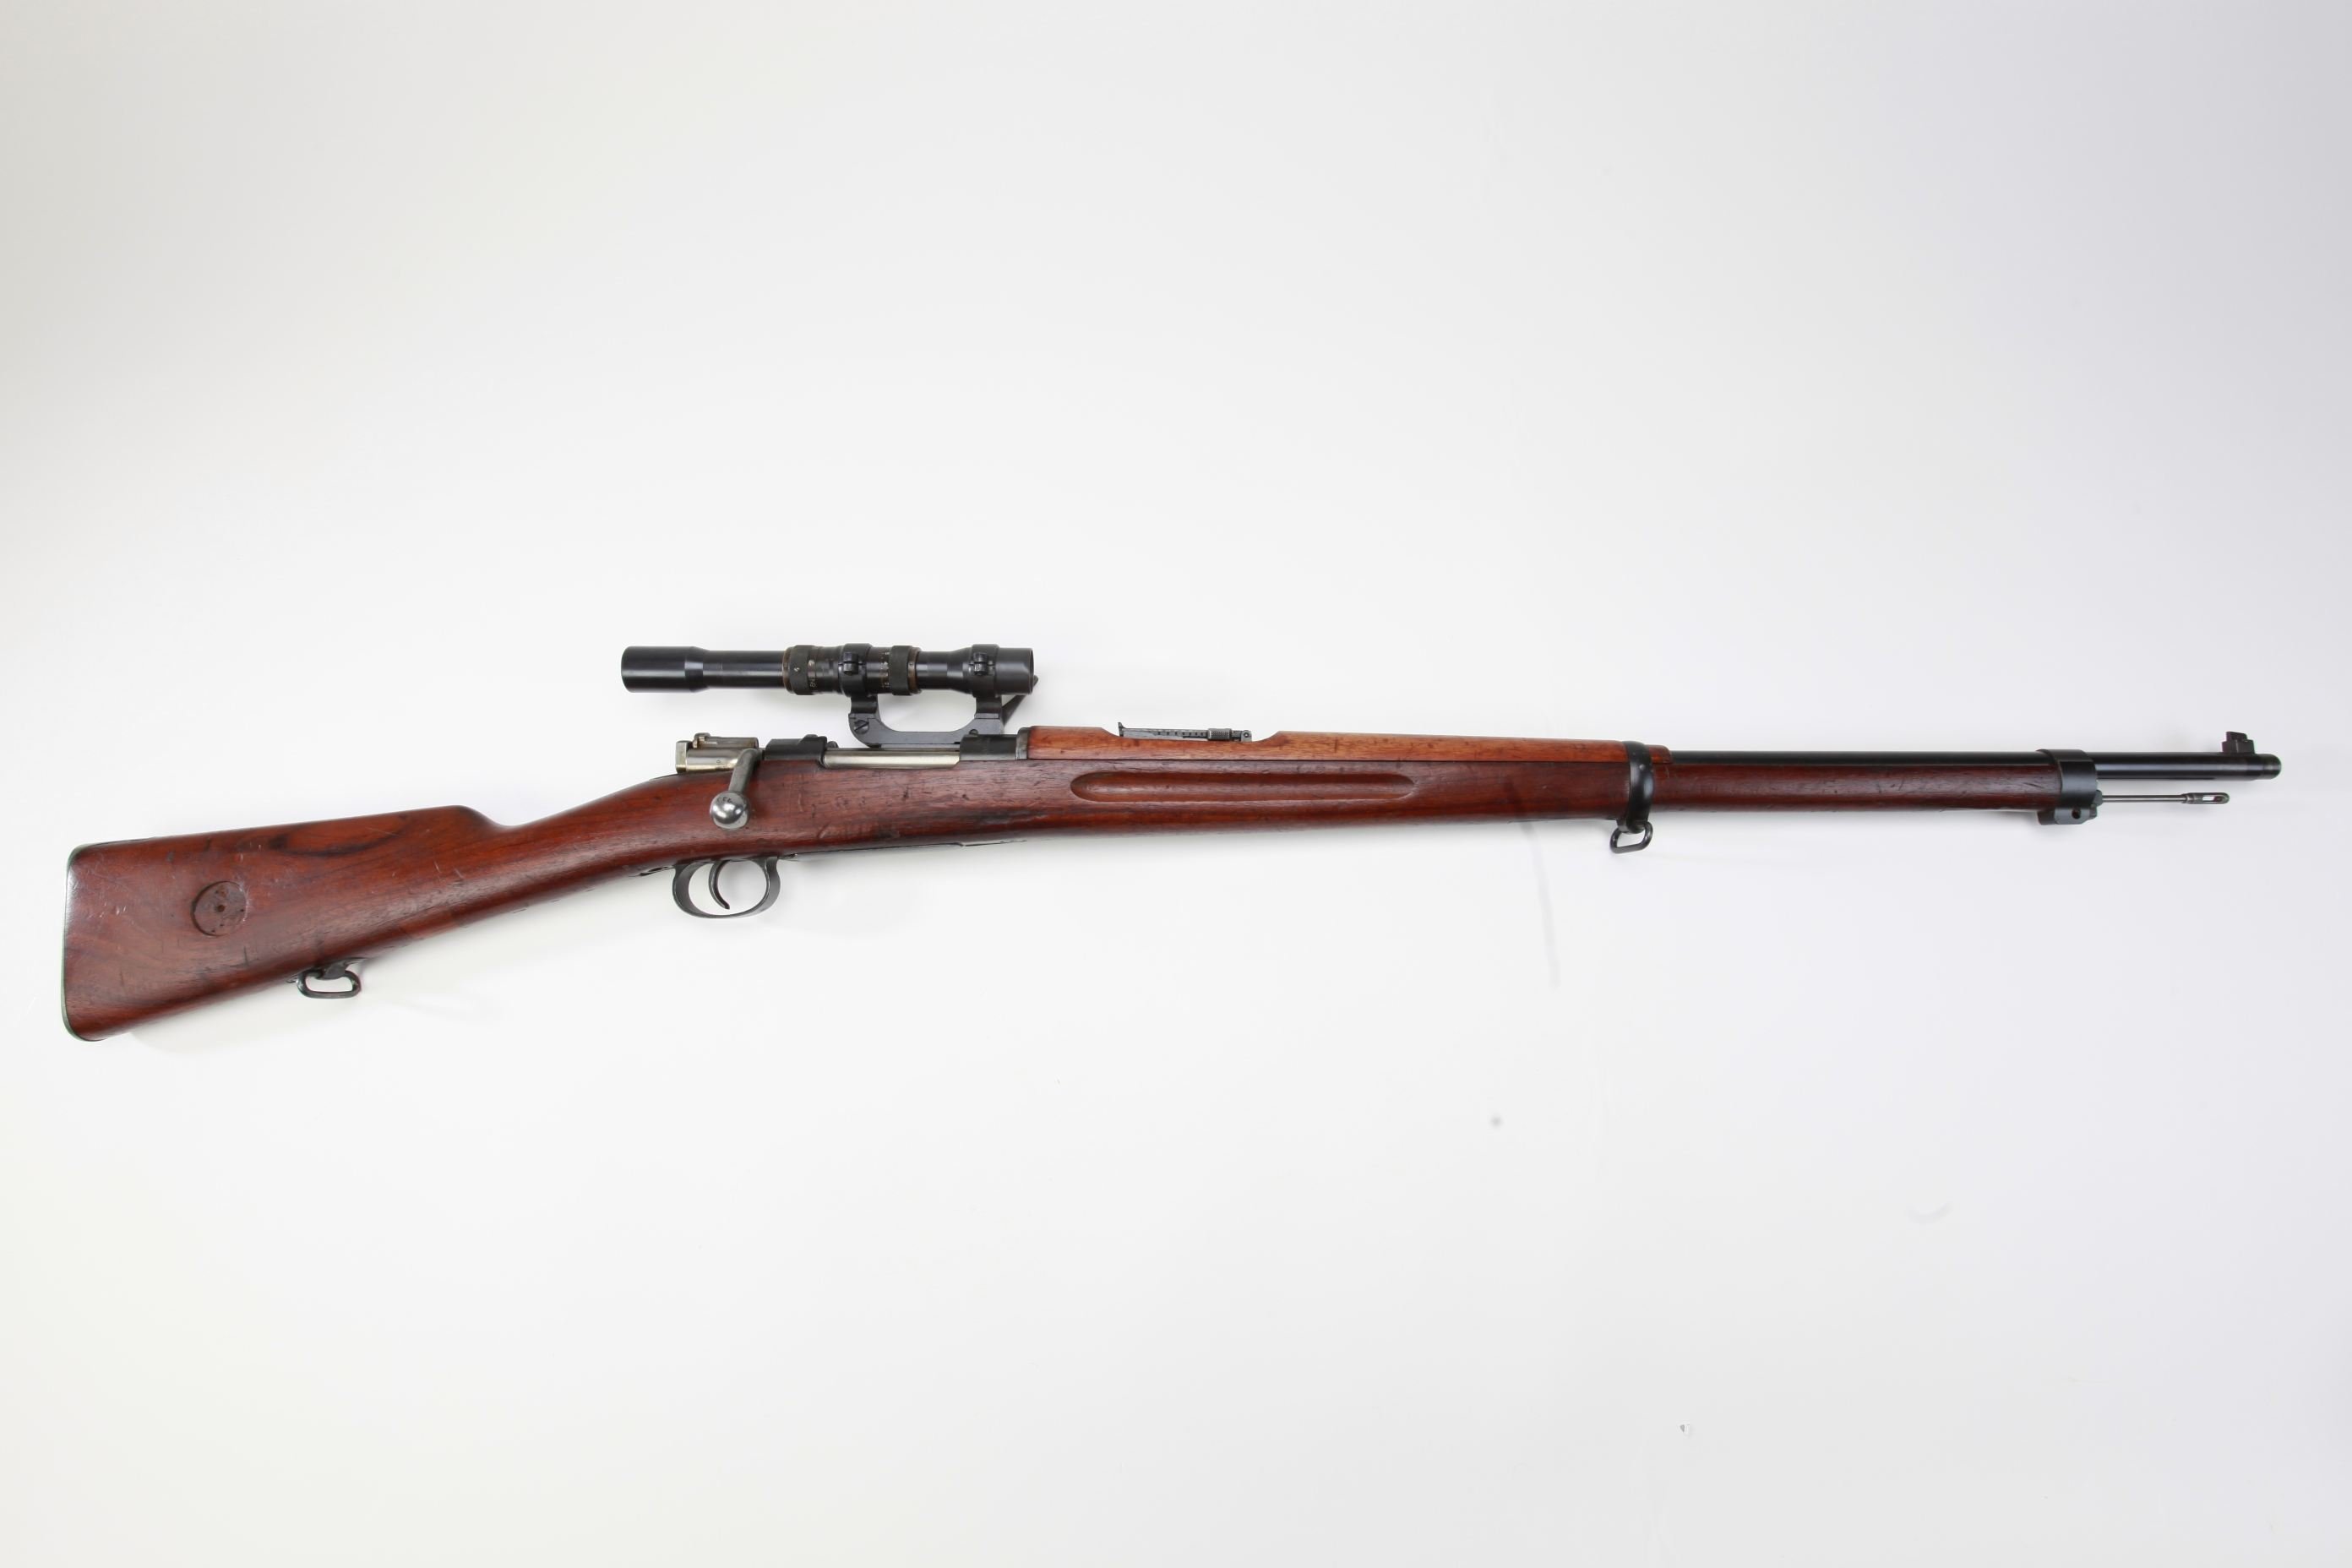 Carl Gustafs Stads Gevarsfaktori Model 96 Bolt Action Rifle